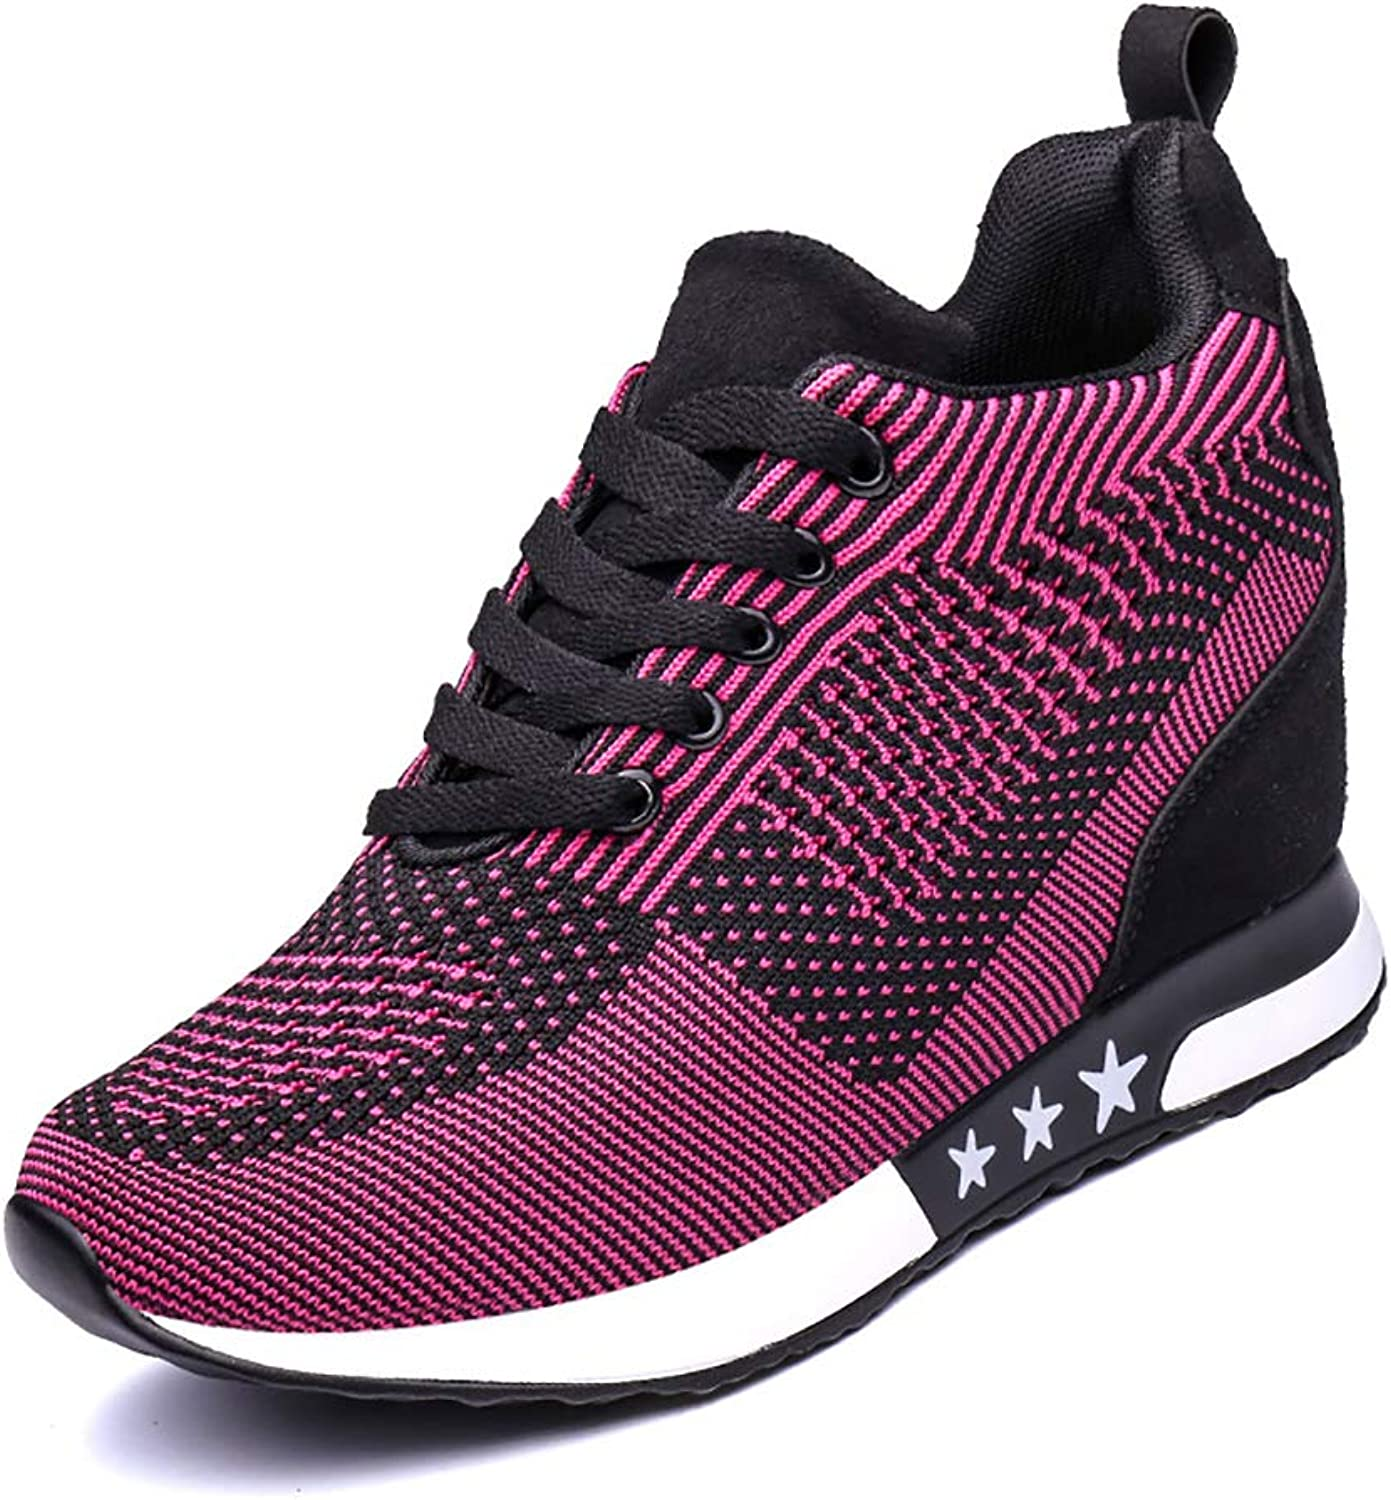 Women Sneakers Sports Running Boot Hiking Height Increasing Platform shoes Loafer Single shoes,Purple,34